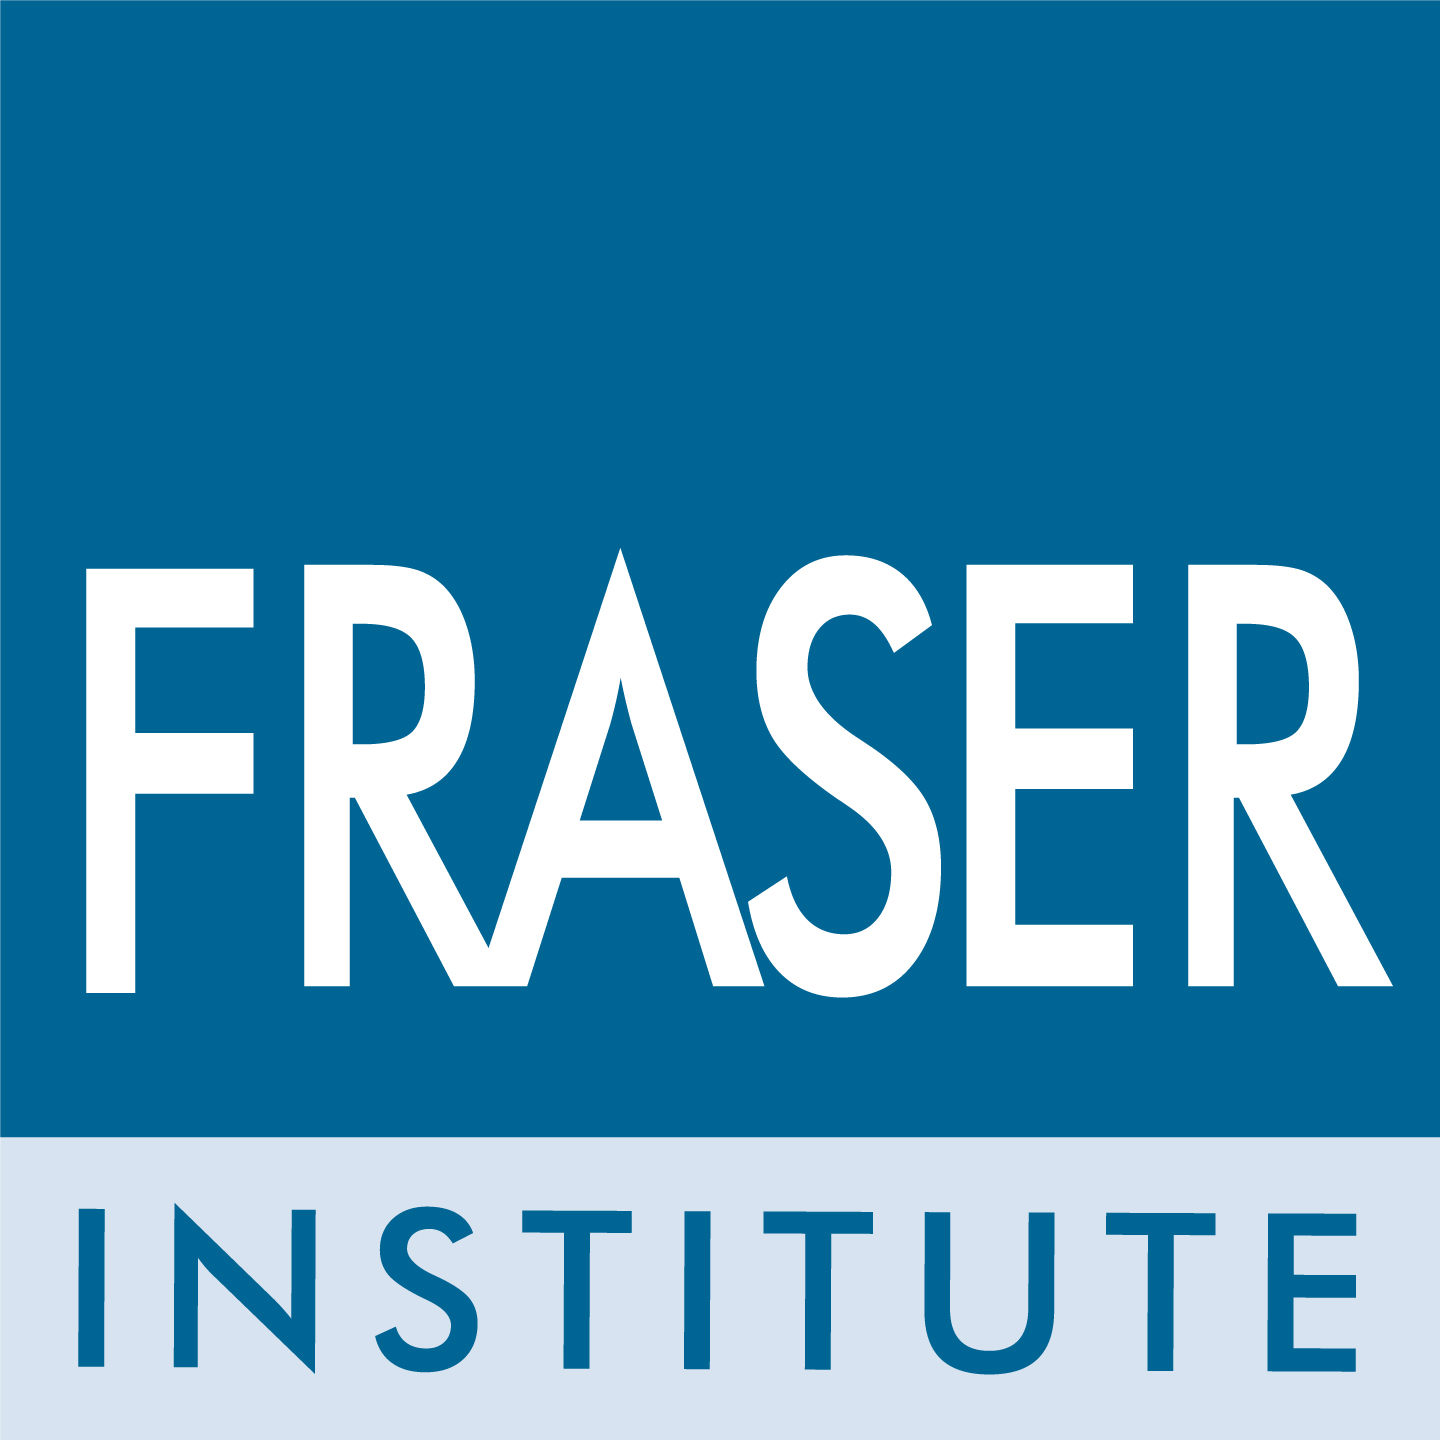 Fraser Institute News Release: Canadian jurisdictions drop out of top 10 most attractive places for mining investment